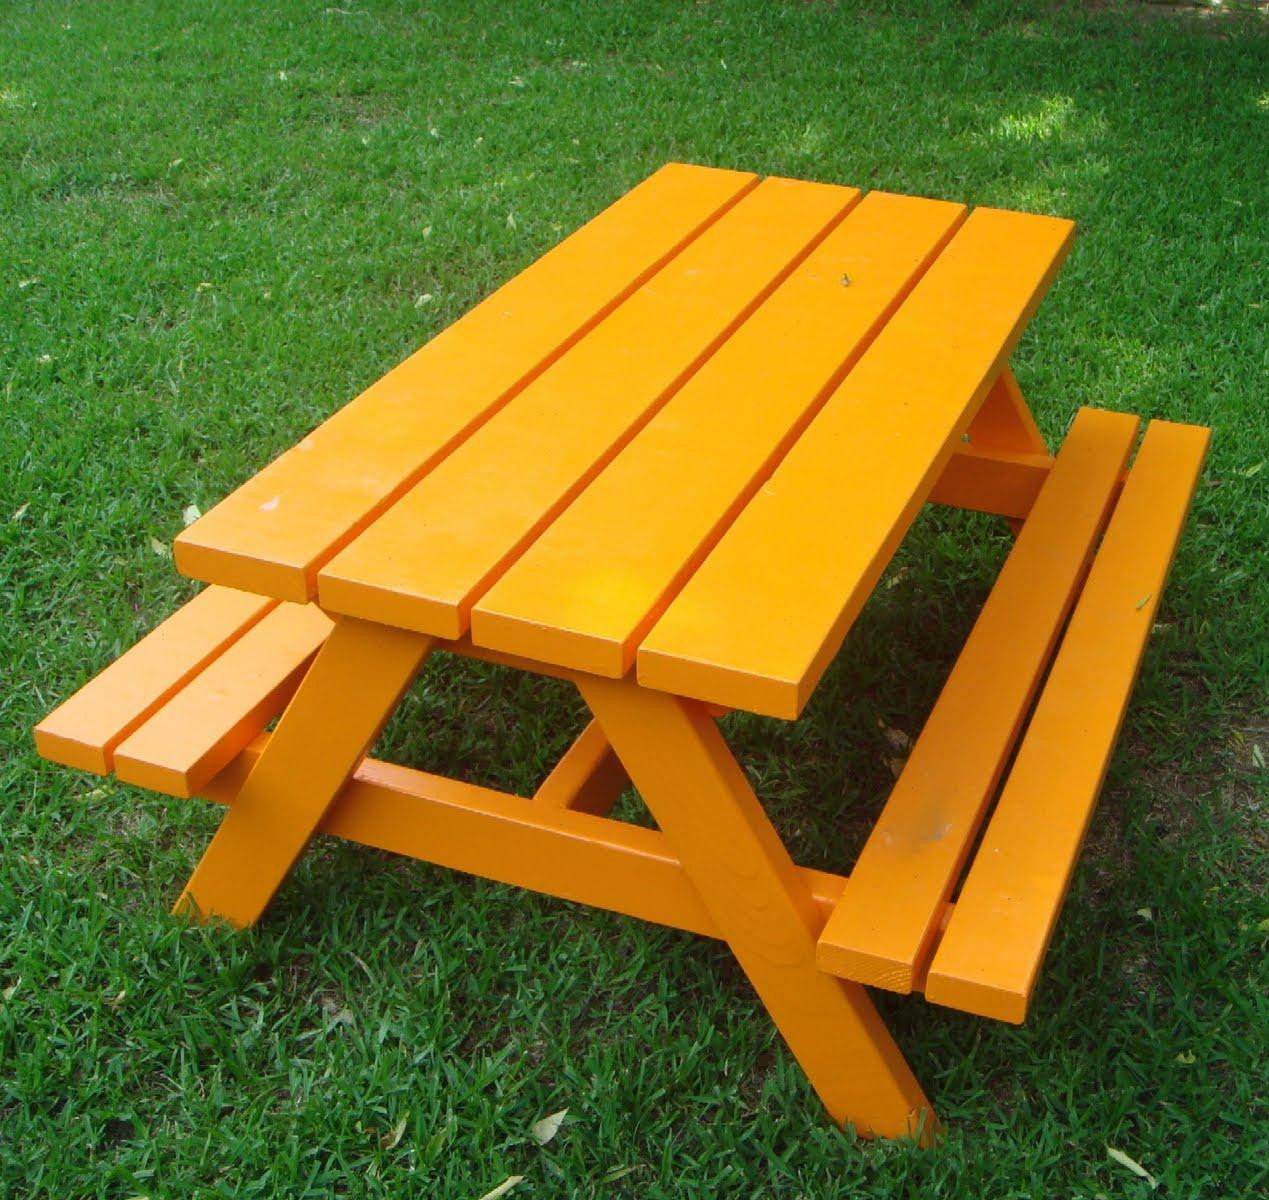 Best ideas about DIY Kids Picnic Table . Save or Pin Ana White Now.